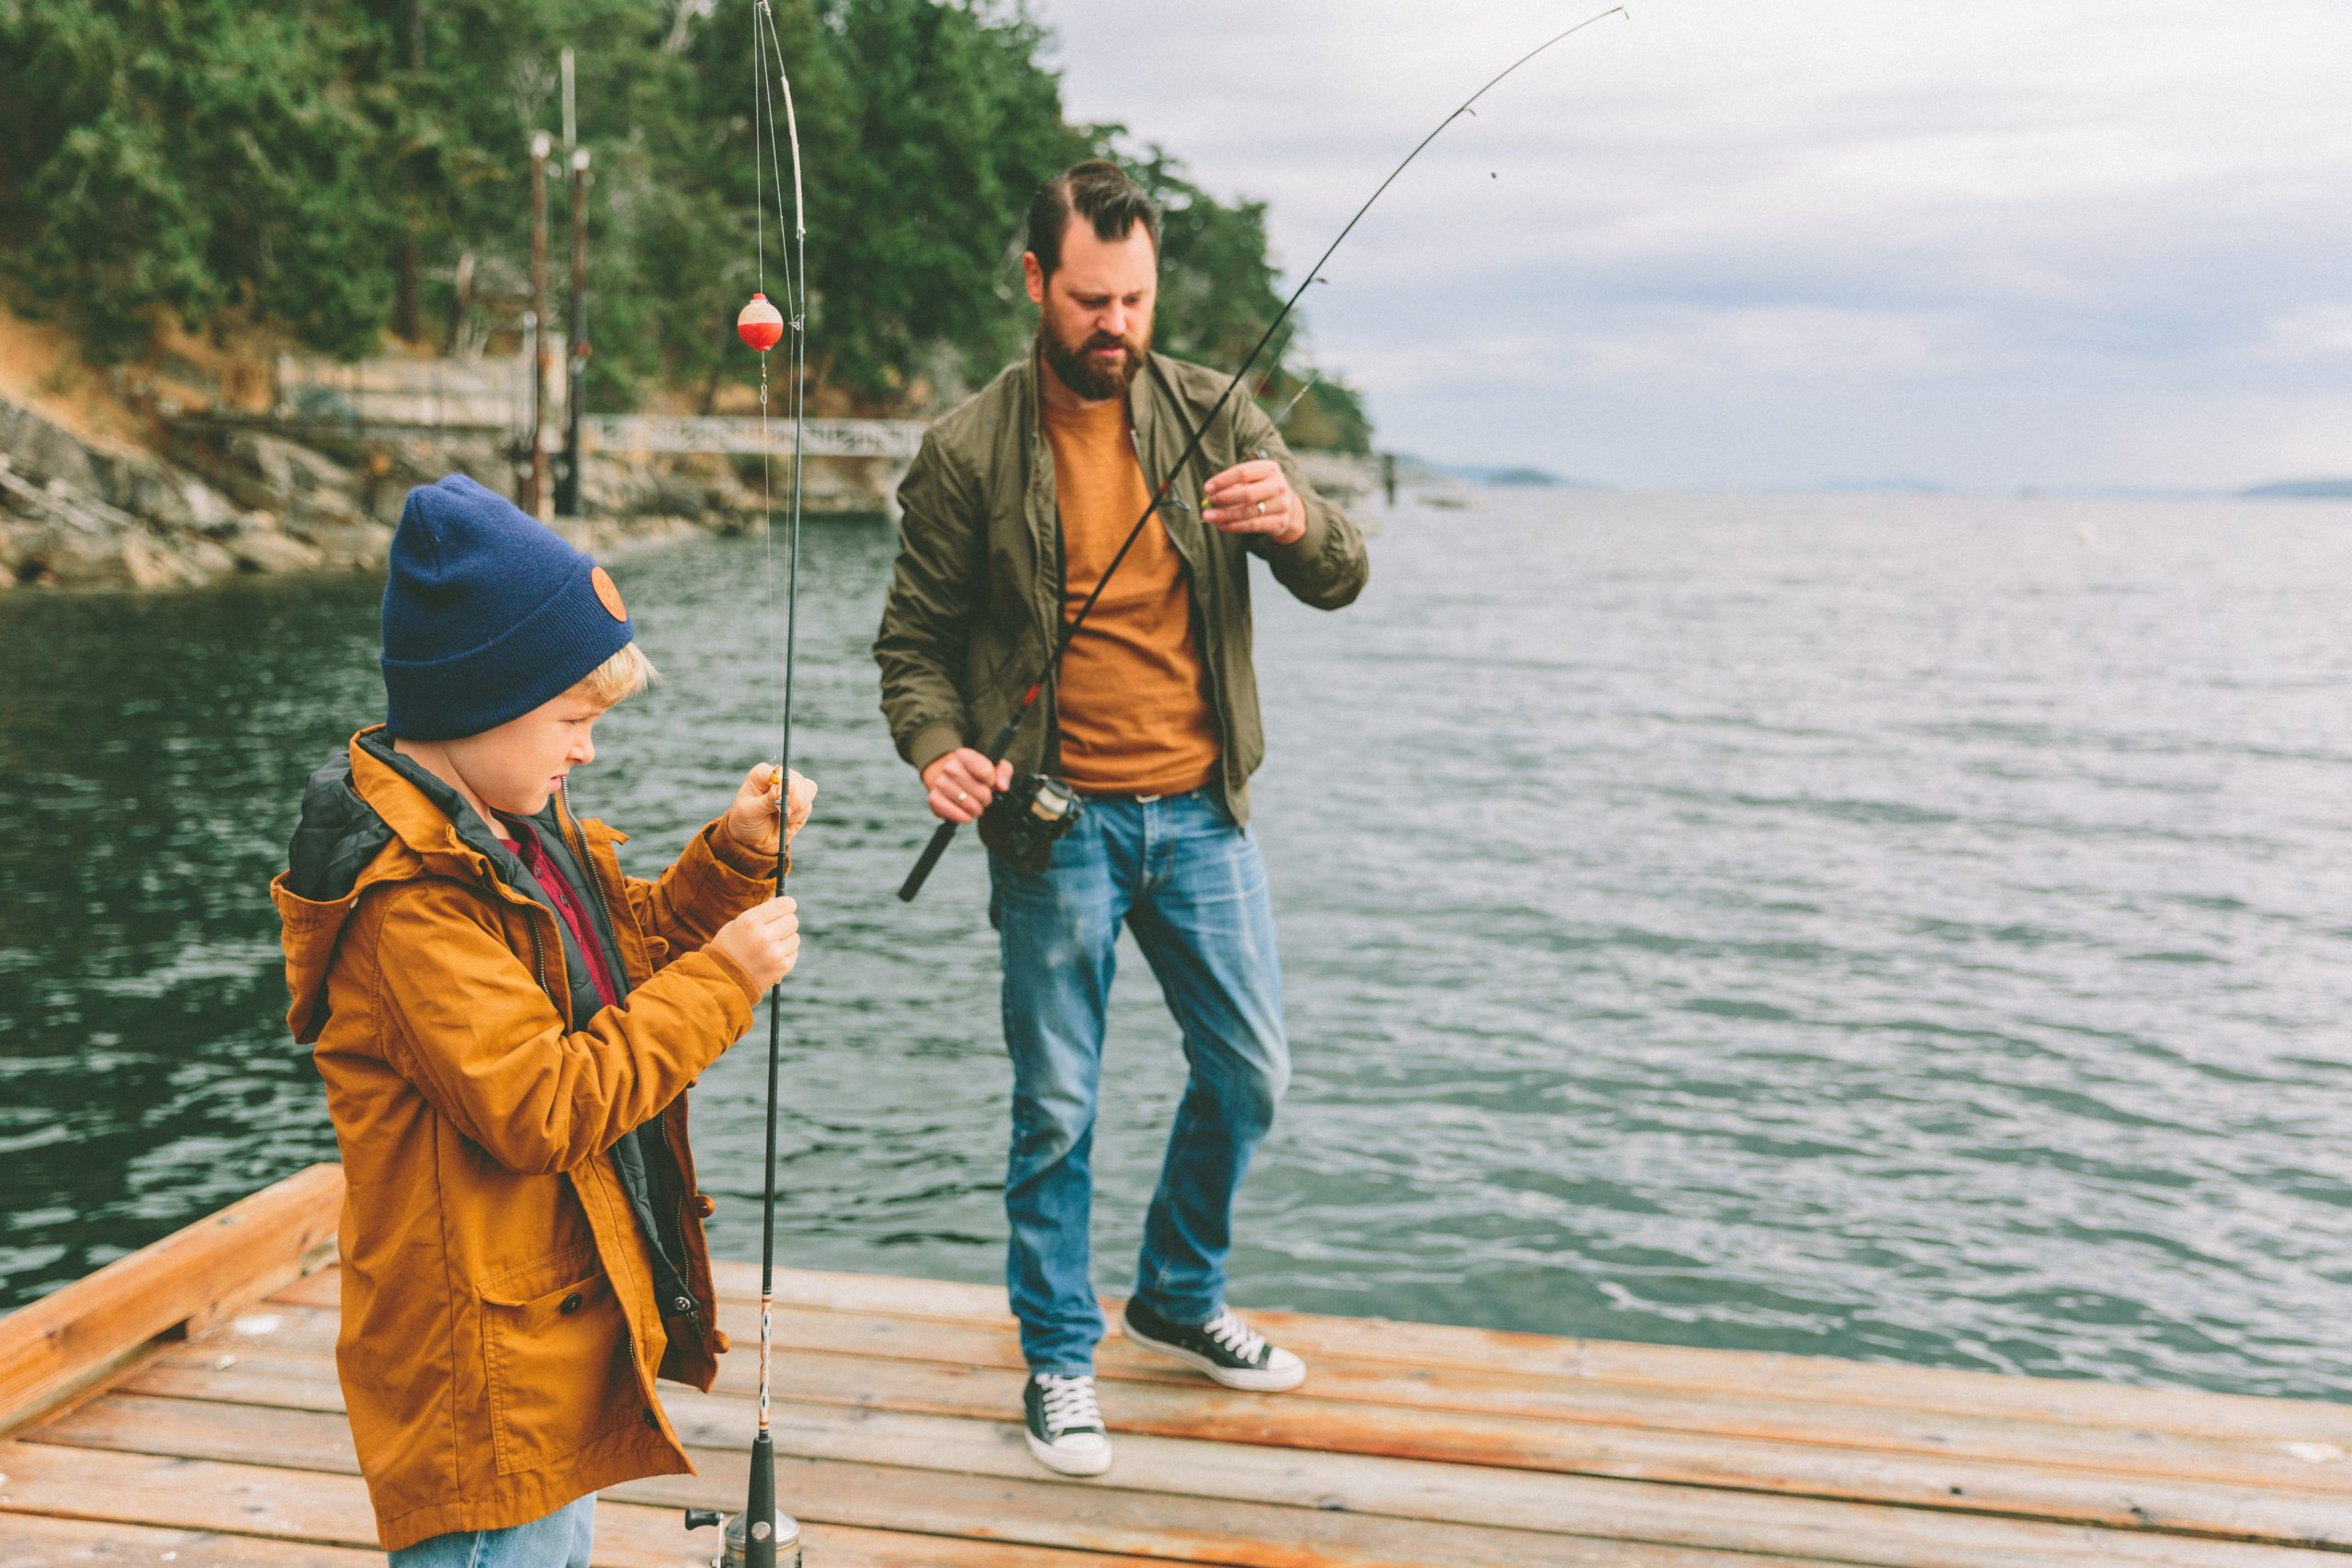 A father and son fishing off a dock at a lake